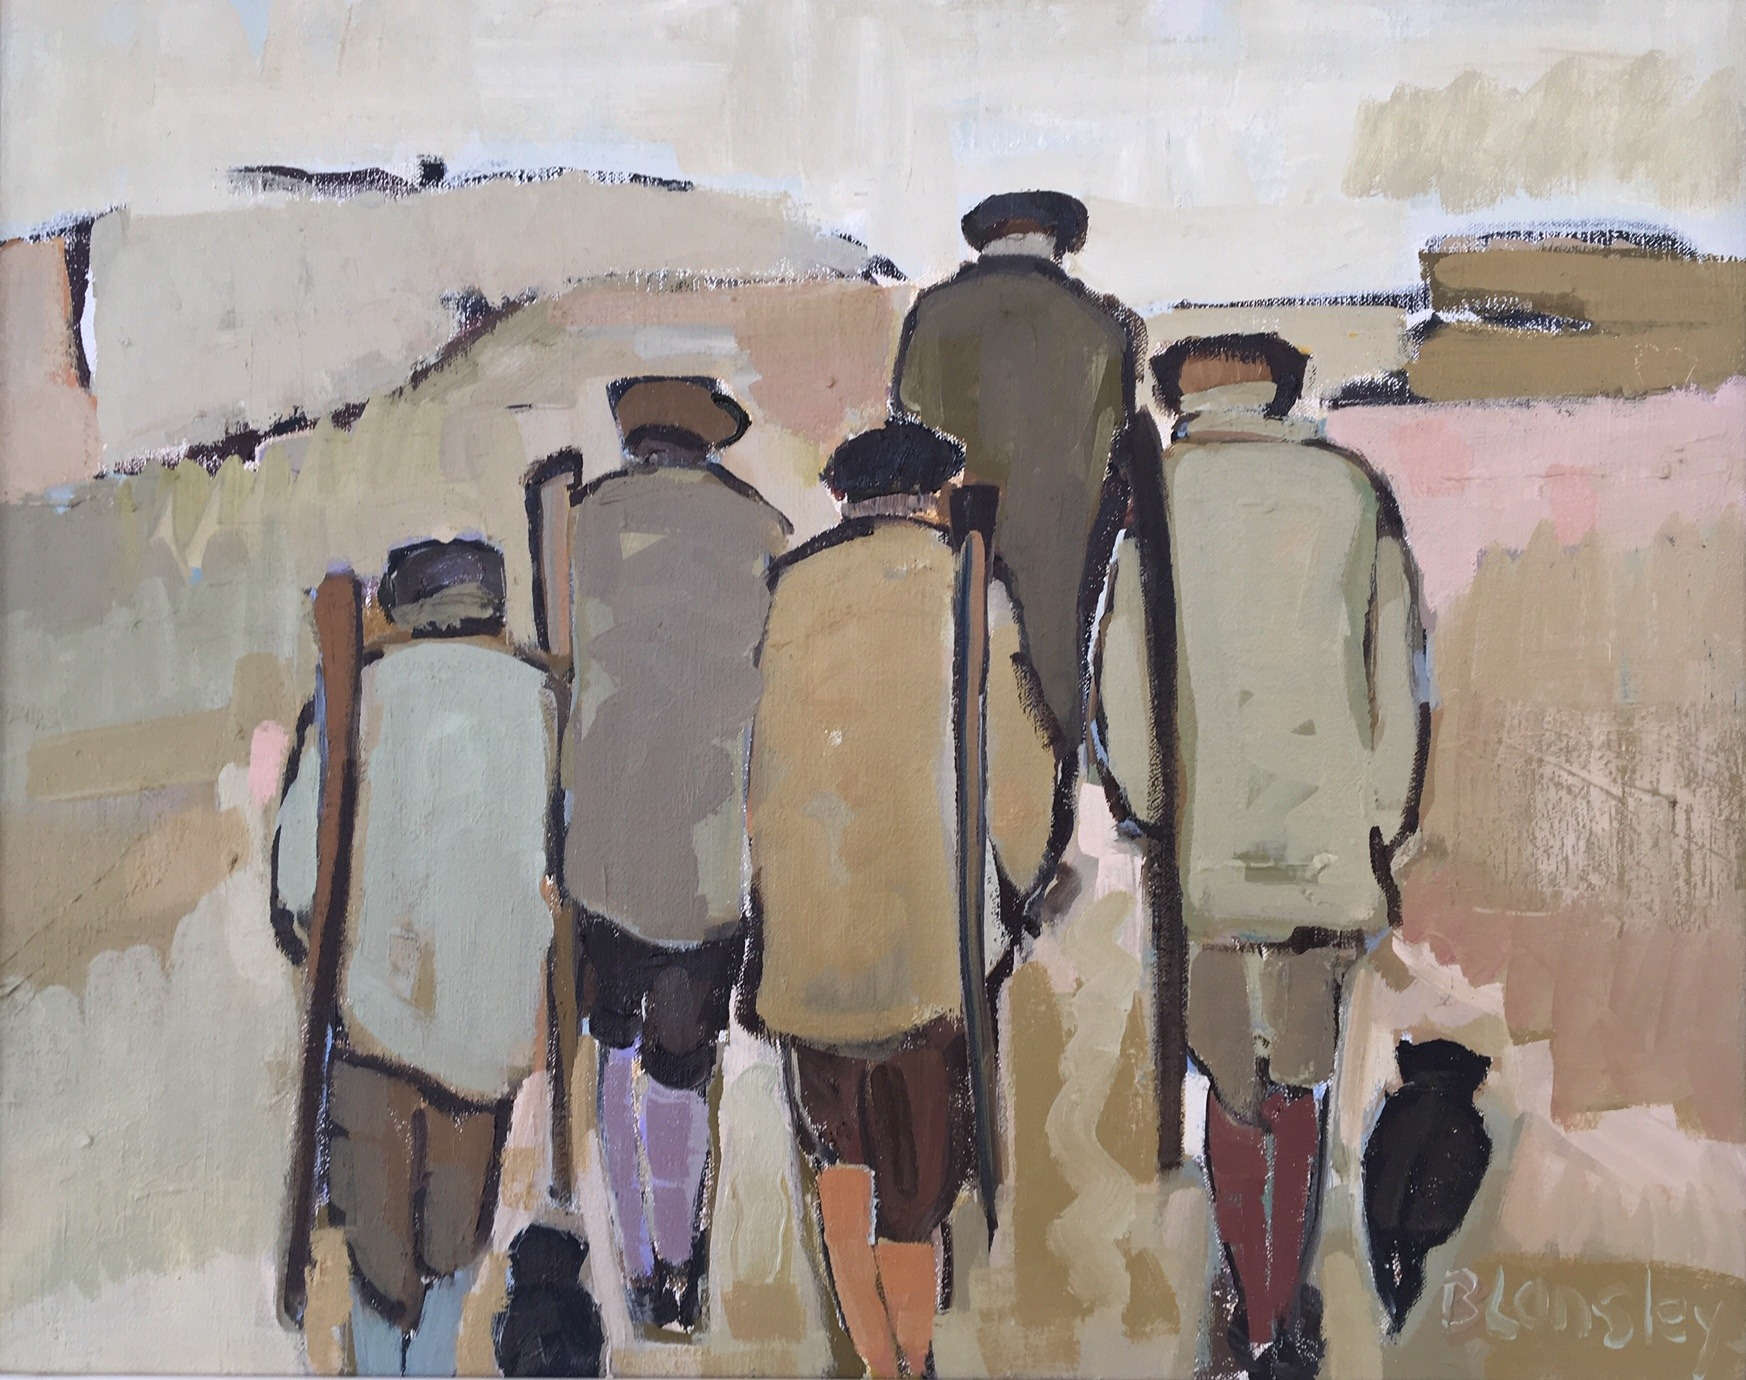 Bridget Lansley - On Their Way - Oil - 16 x 20 inches